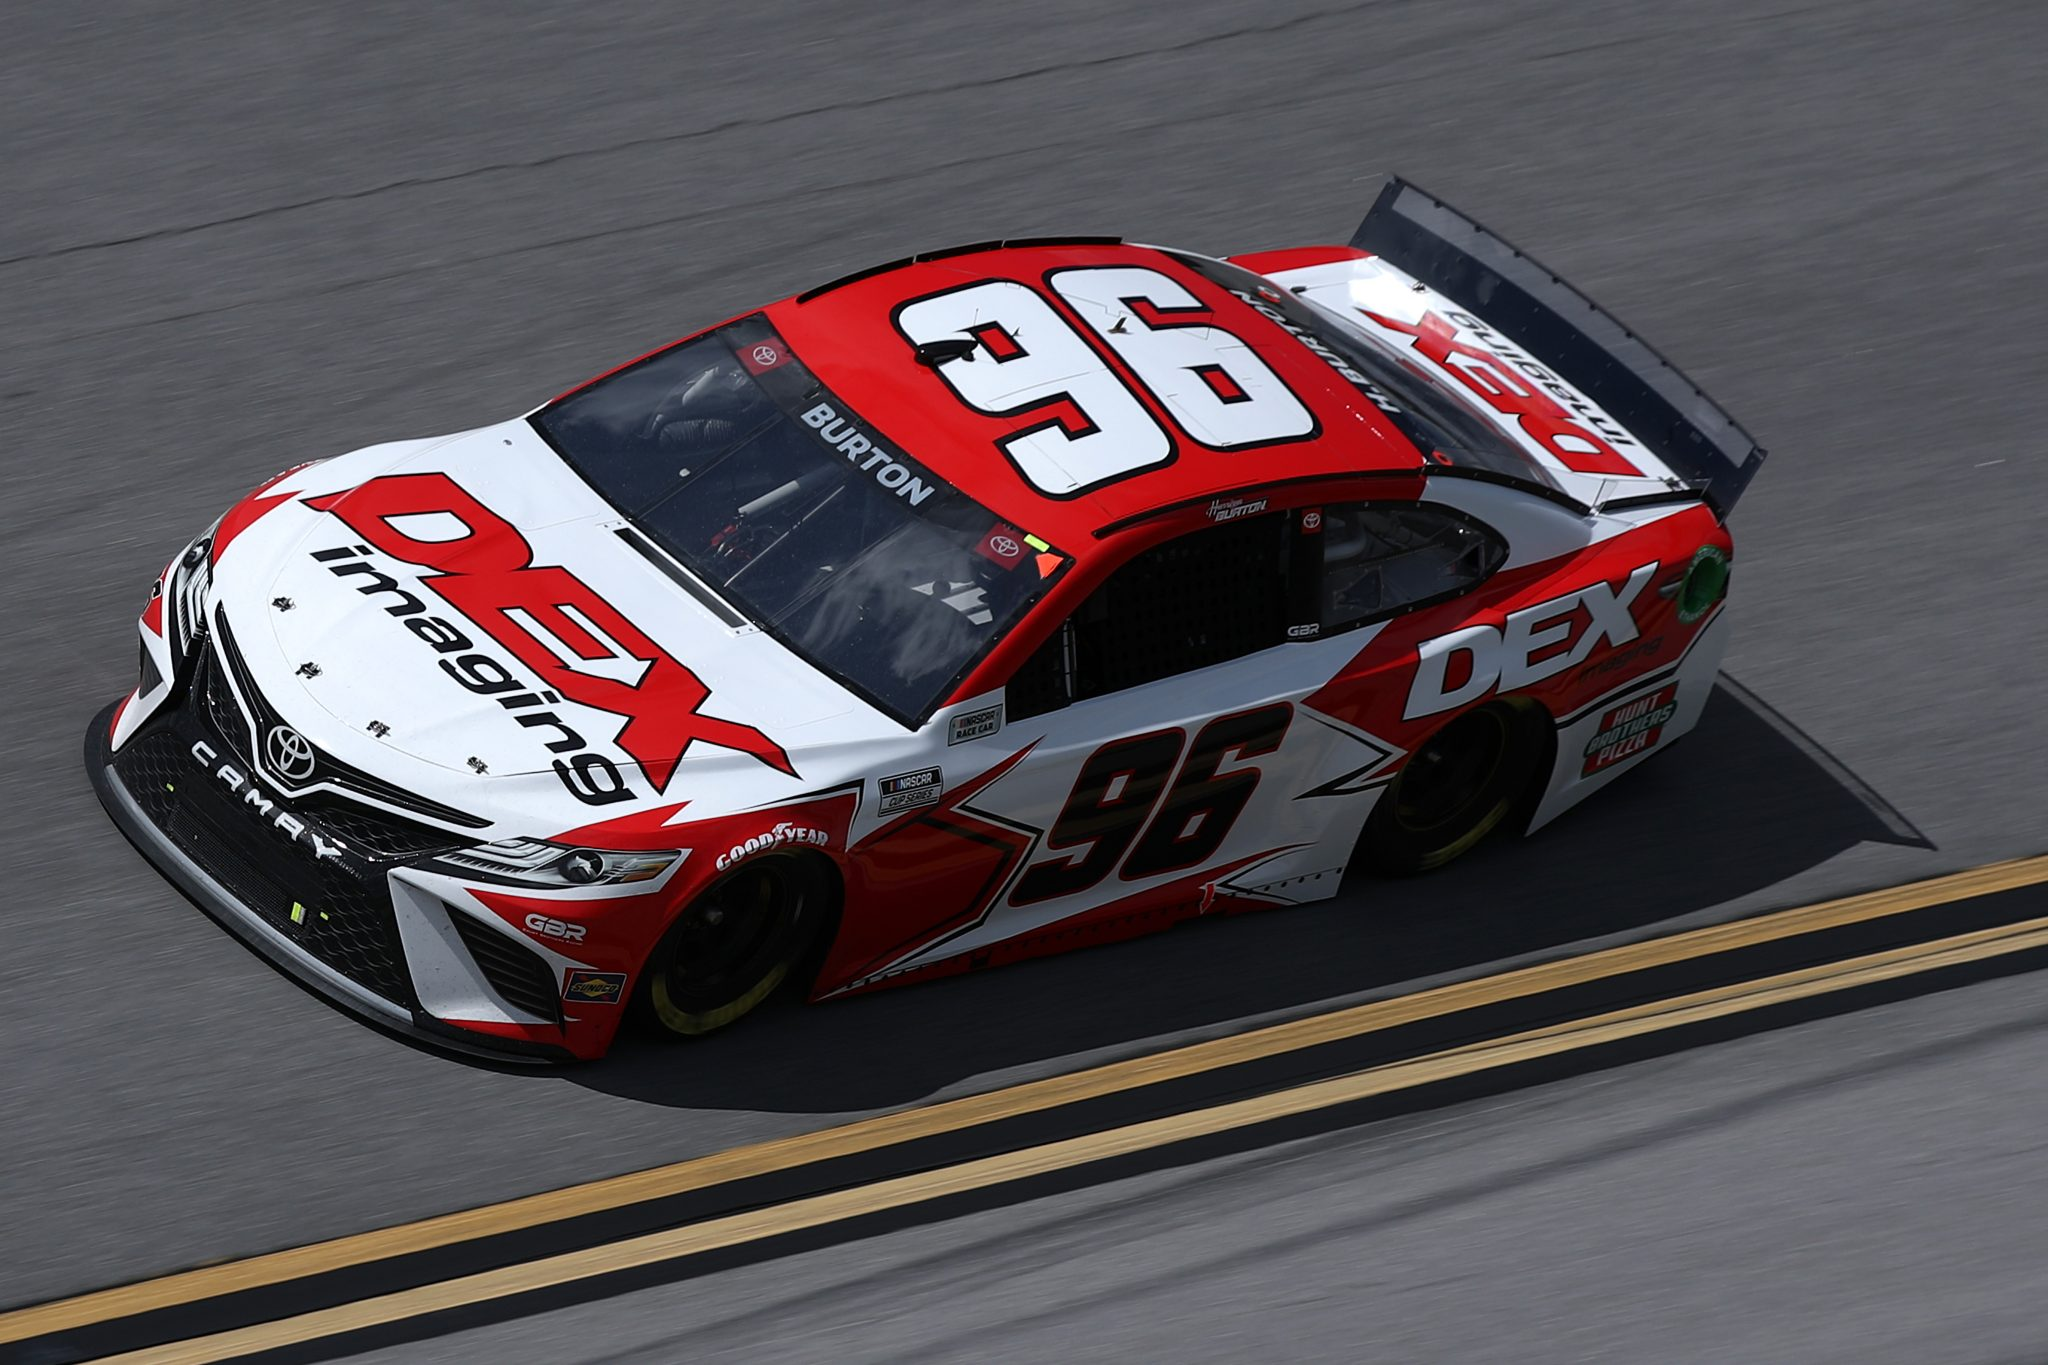 TALLADEGA, ALABAMA - APRIL 25: Harrison Burton, driver of the #96 DEX Imaging Toyota, drives during the NASCAR Cup Series  GEICO 500 at Talladega Superspeedway on April 25, 2021 in Talladega, Alabama. (Photo by Sean Gardner/Getty Images) | Getty Images